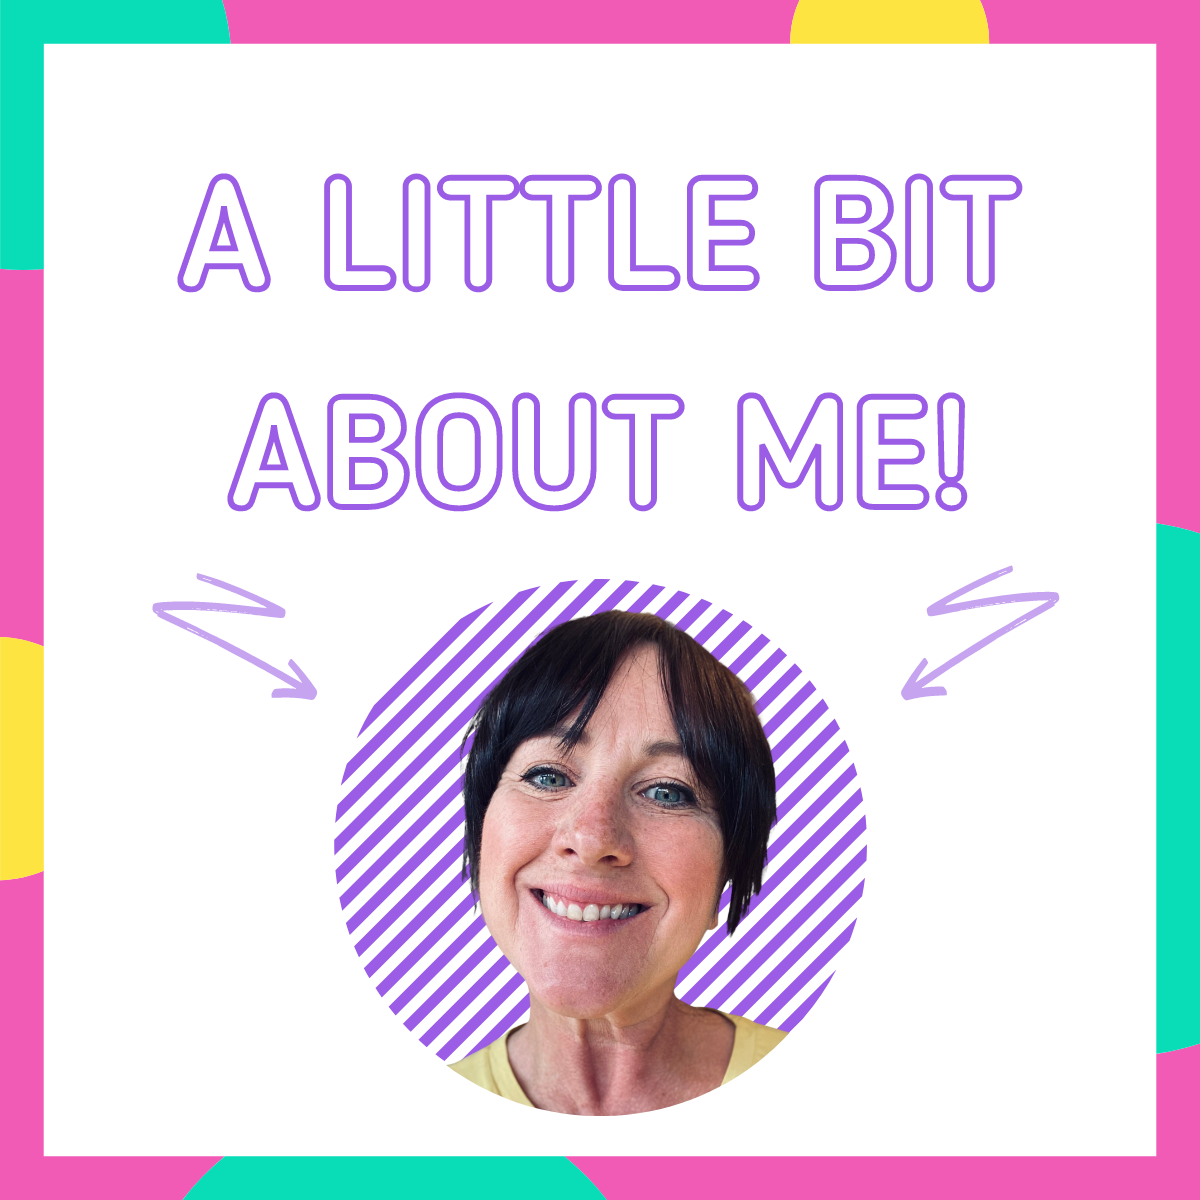 about me - shelley lucas ball